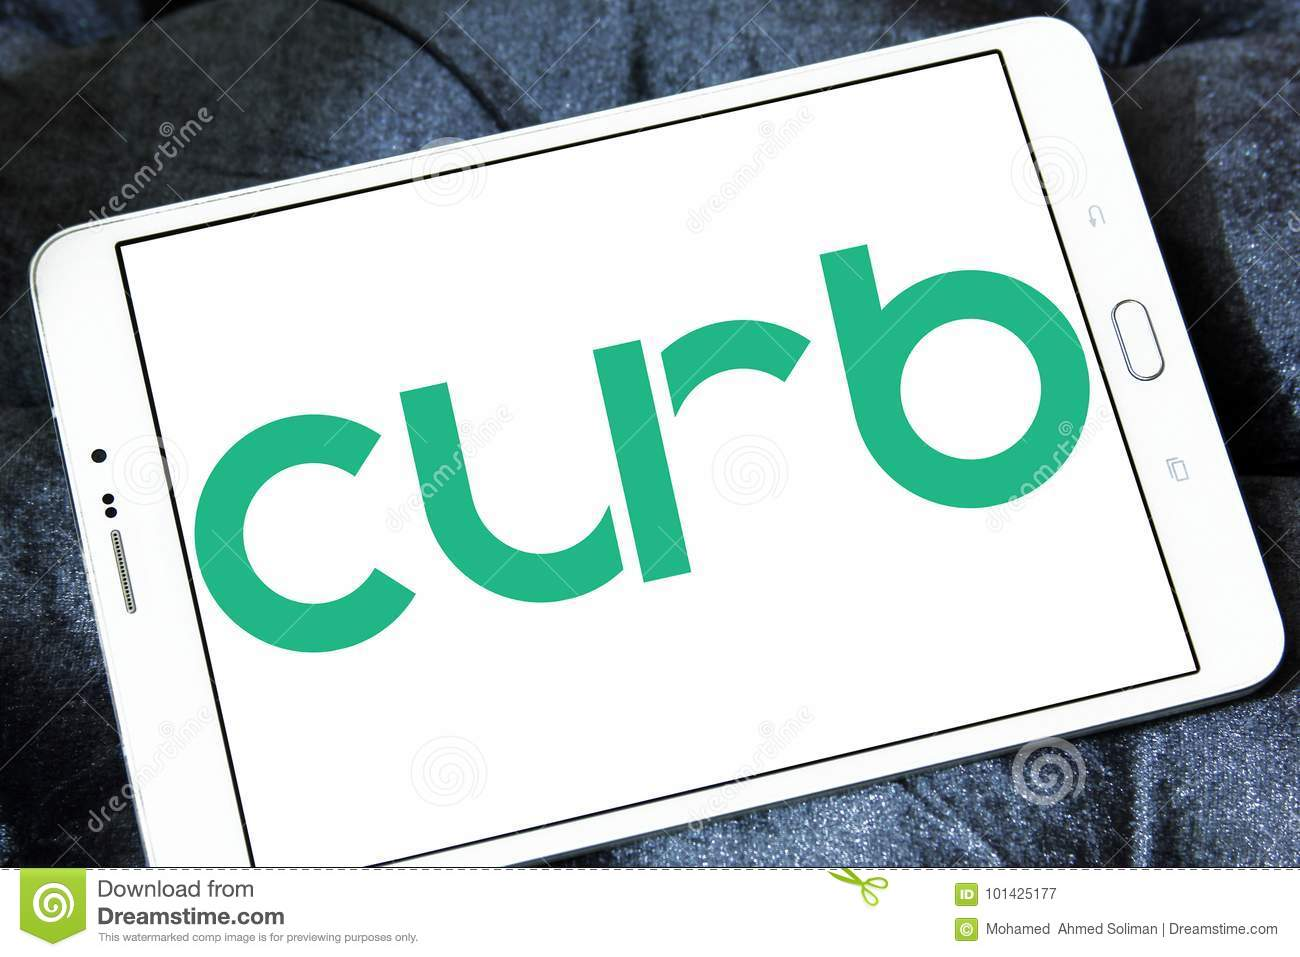 Curb taxi logo editorial photography  Image of brand - 101425177